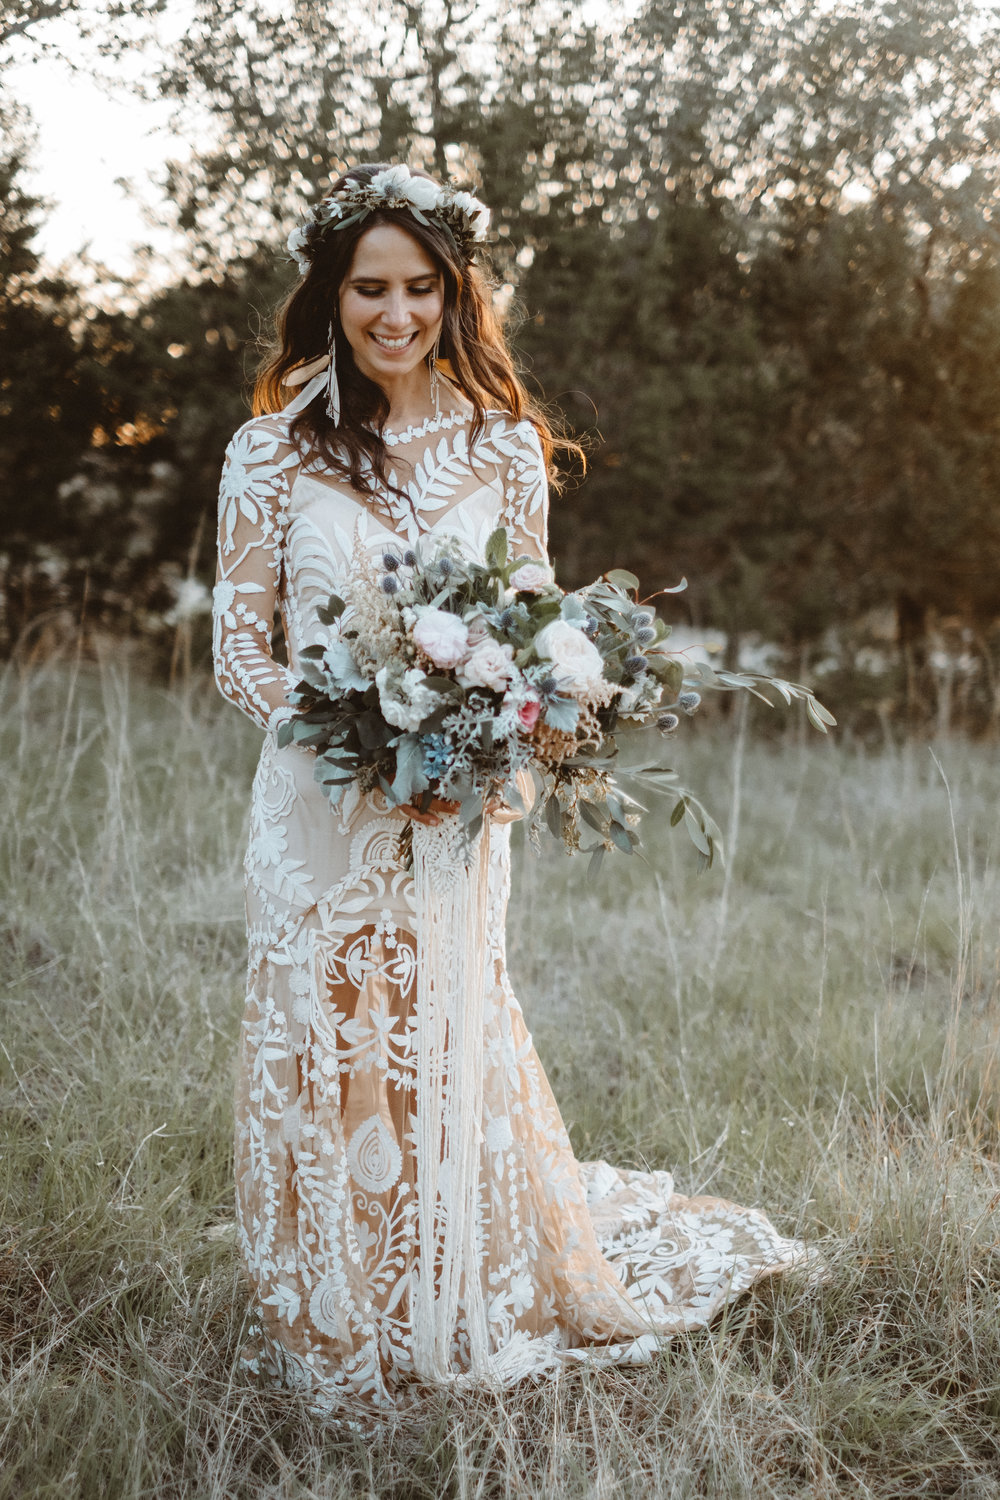 Bohemian style, wildflower inspired bridal and bridesmaid bouquets with white peonies, protea, eucalyptus, anemone, ranunculus at Vista West Ranch. Petal Pushers floral event design studio located in Dripping Springs, Texas.